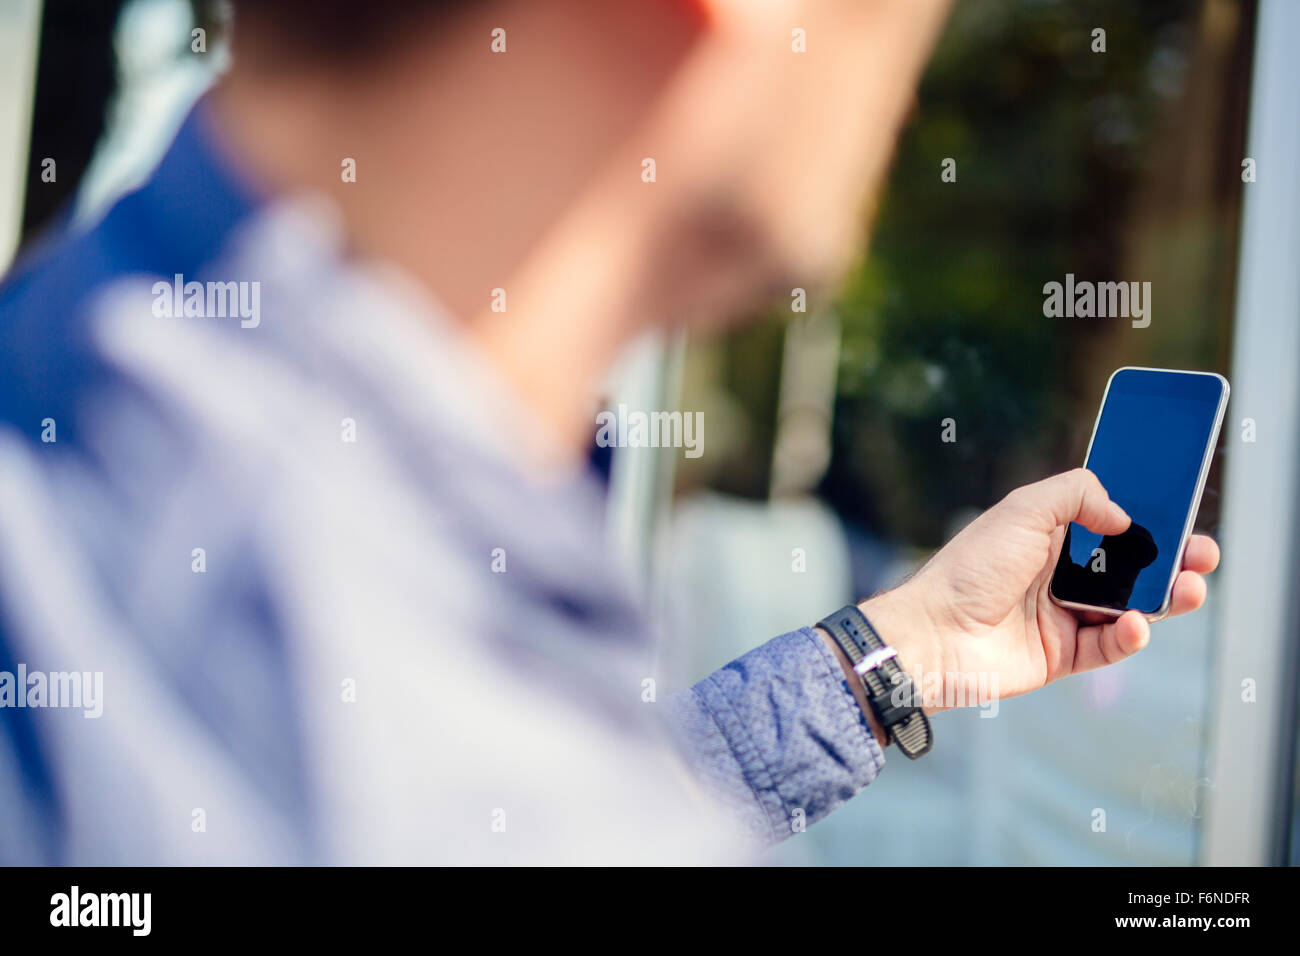 Man holding phone outdoors and tapping it - Stock Image